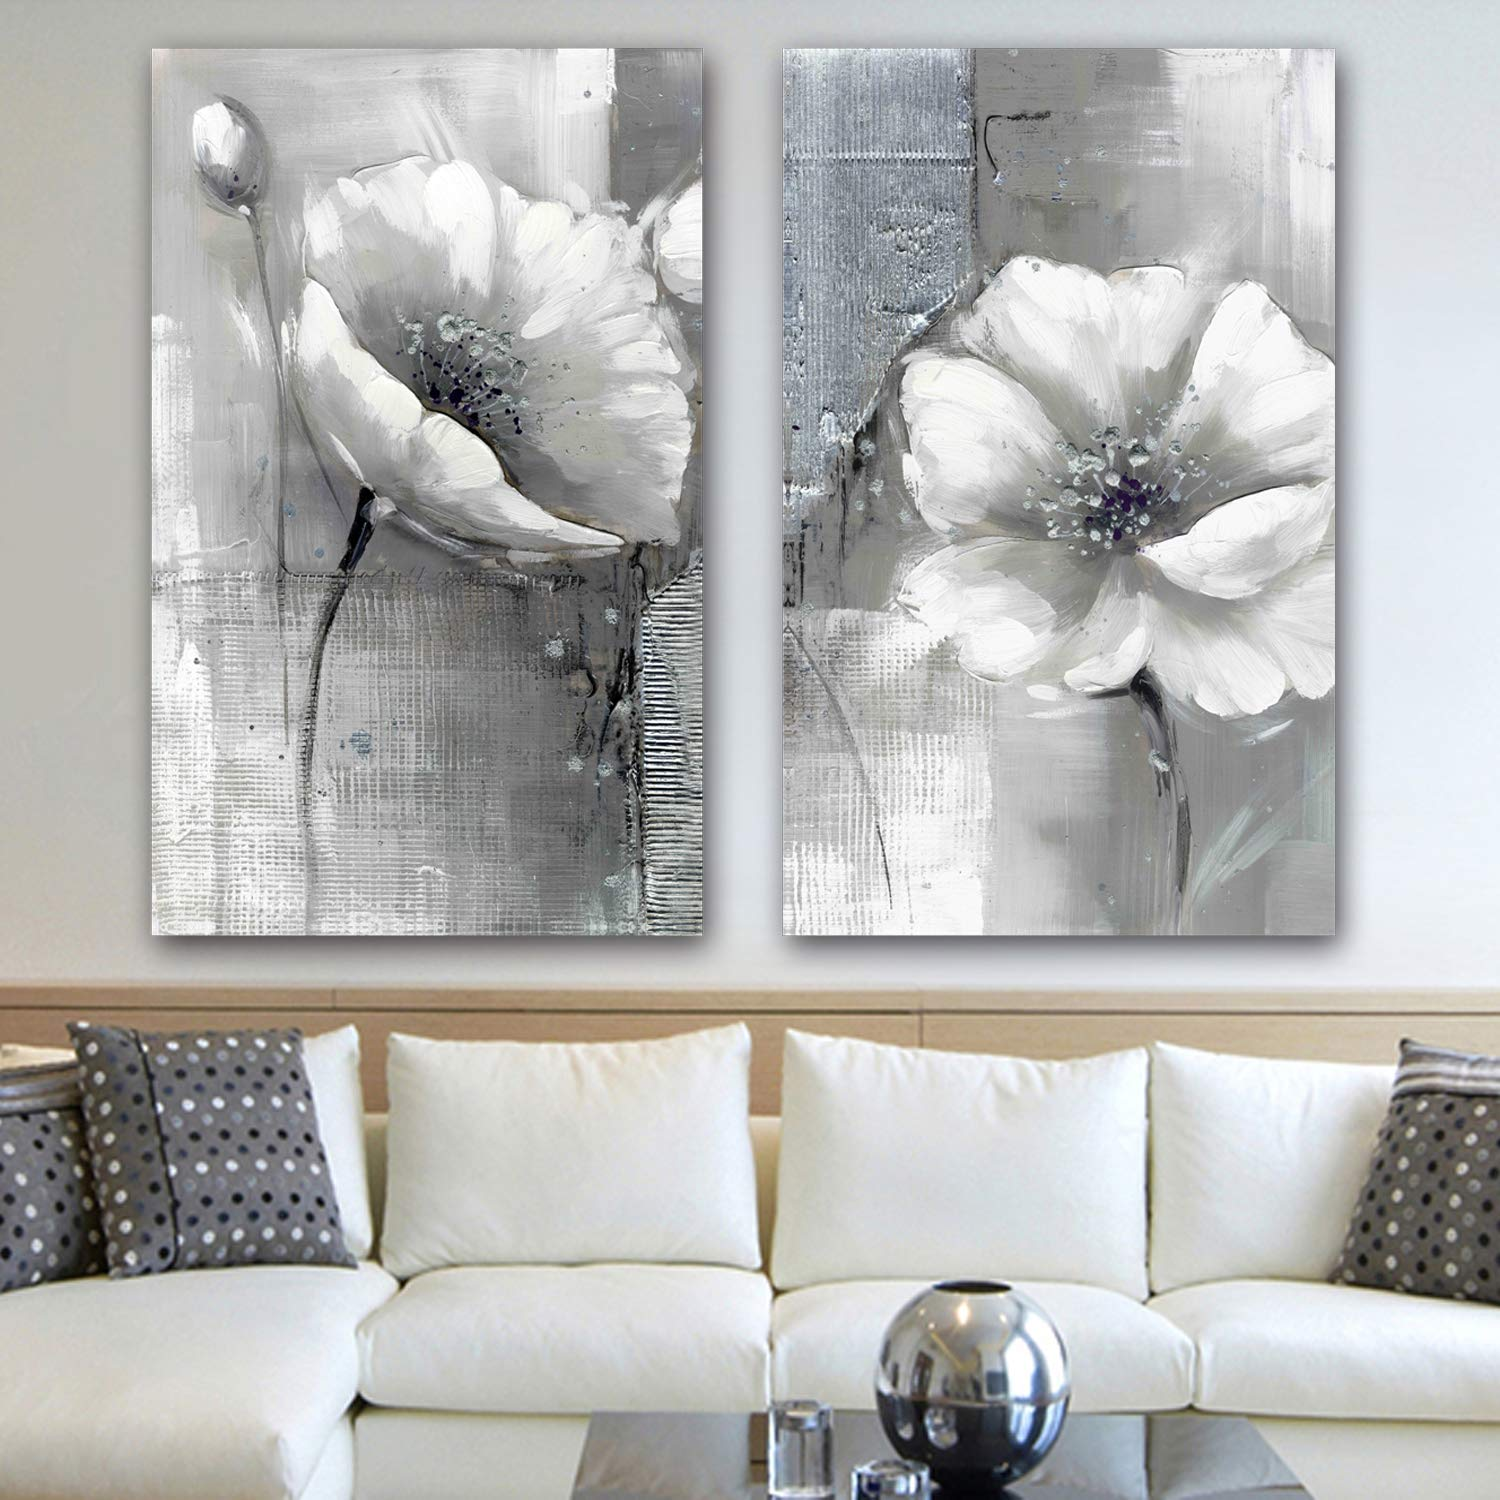 Meiyi yimei modern artwork giclee wall art white and grey flowers pictures paintings on canvas wall art ready to hang for living room bedroom home